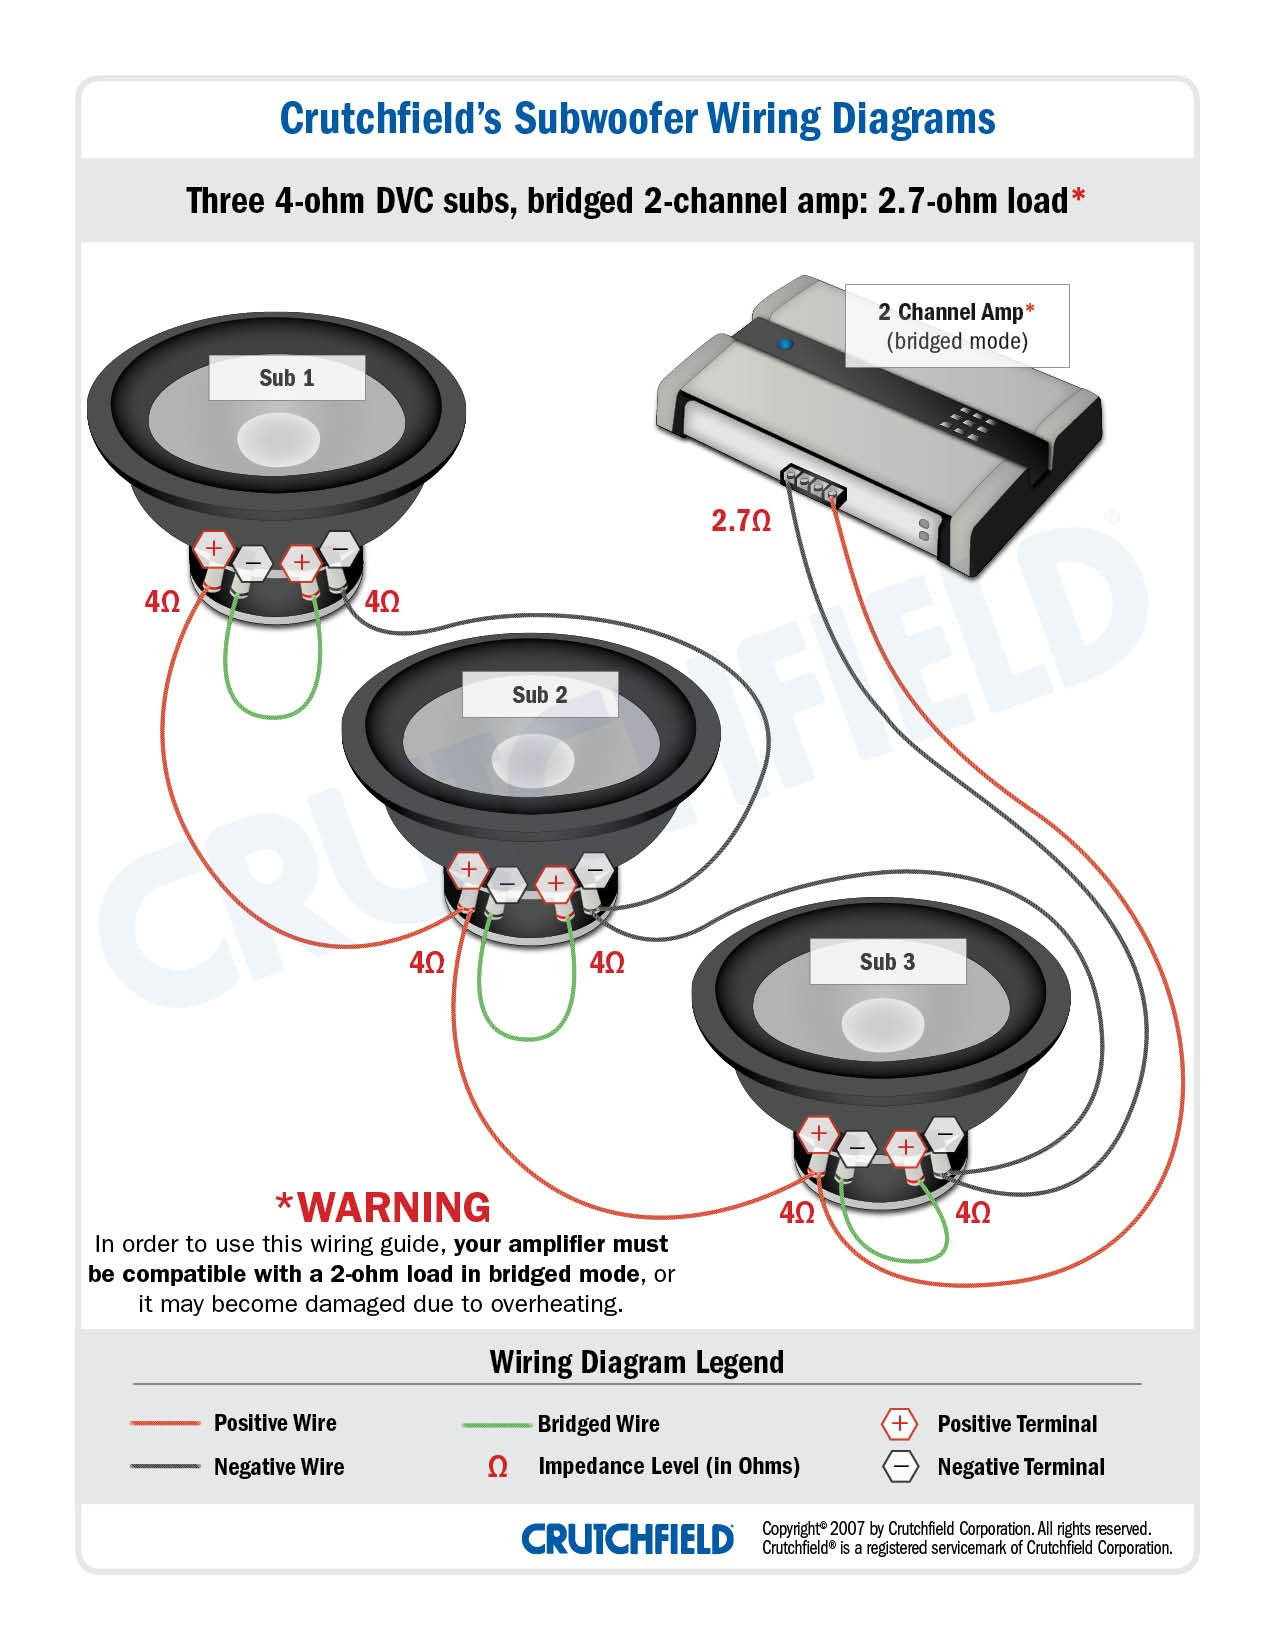 Wiring diagram for car amplifier and subwoofer car audio wiring related post asfbconference2016 Choice Image